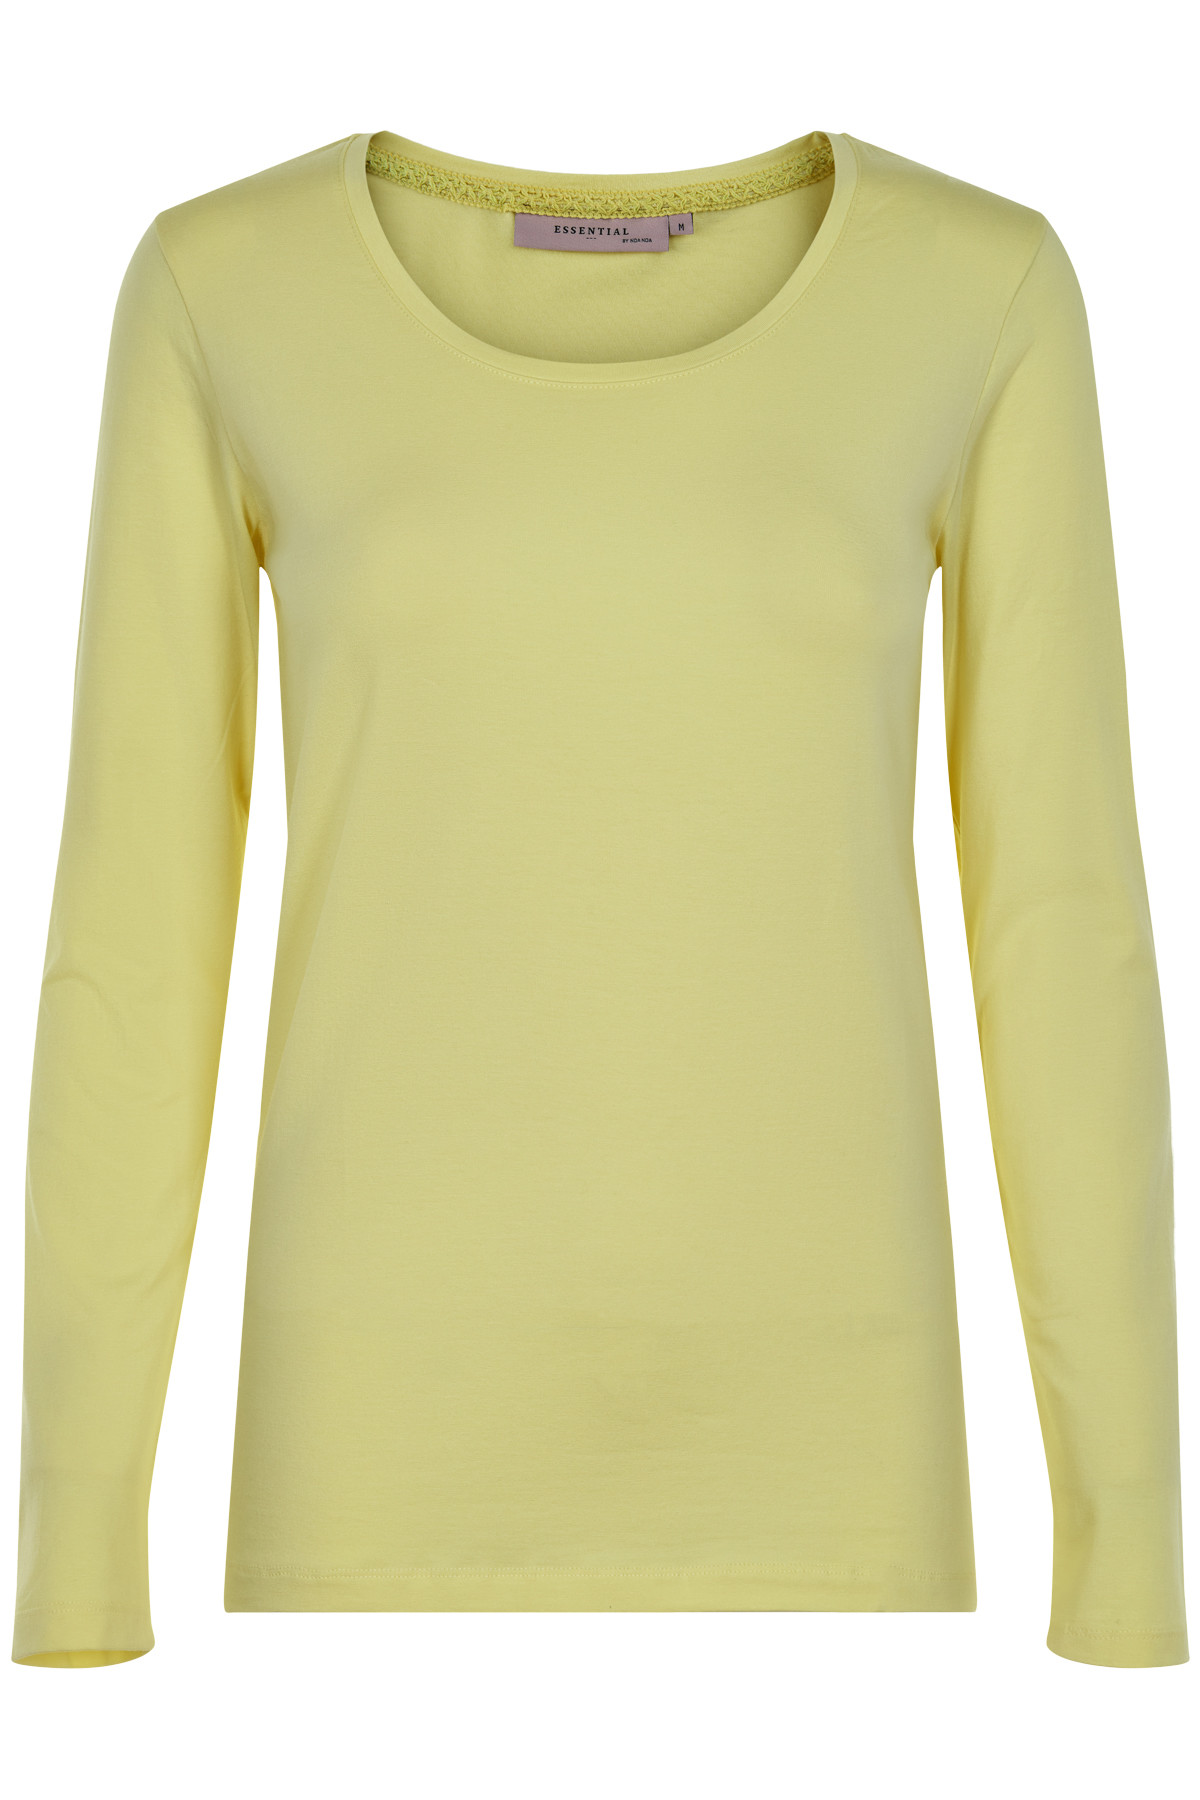 NOA NOA T-SHIRT 1-5270-19 01053 (Yellow, L)